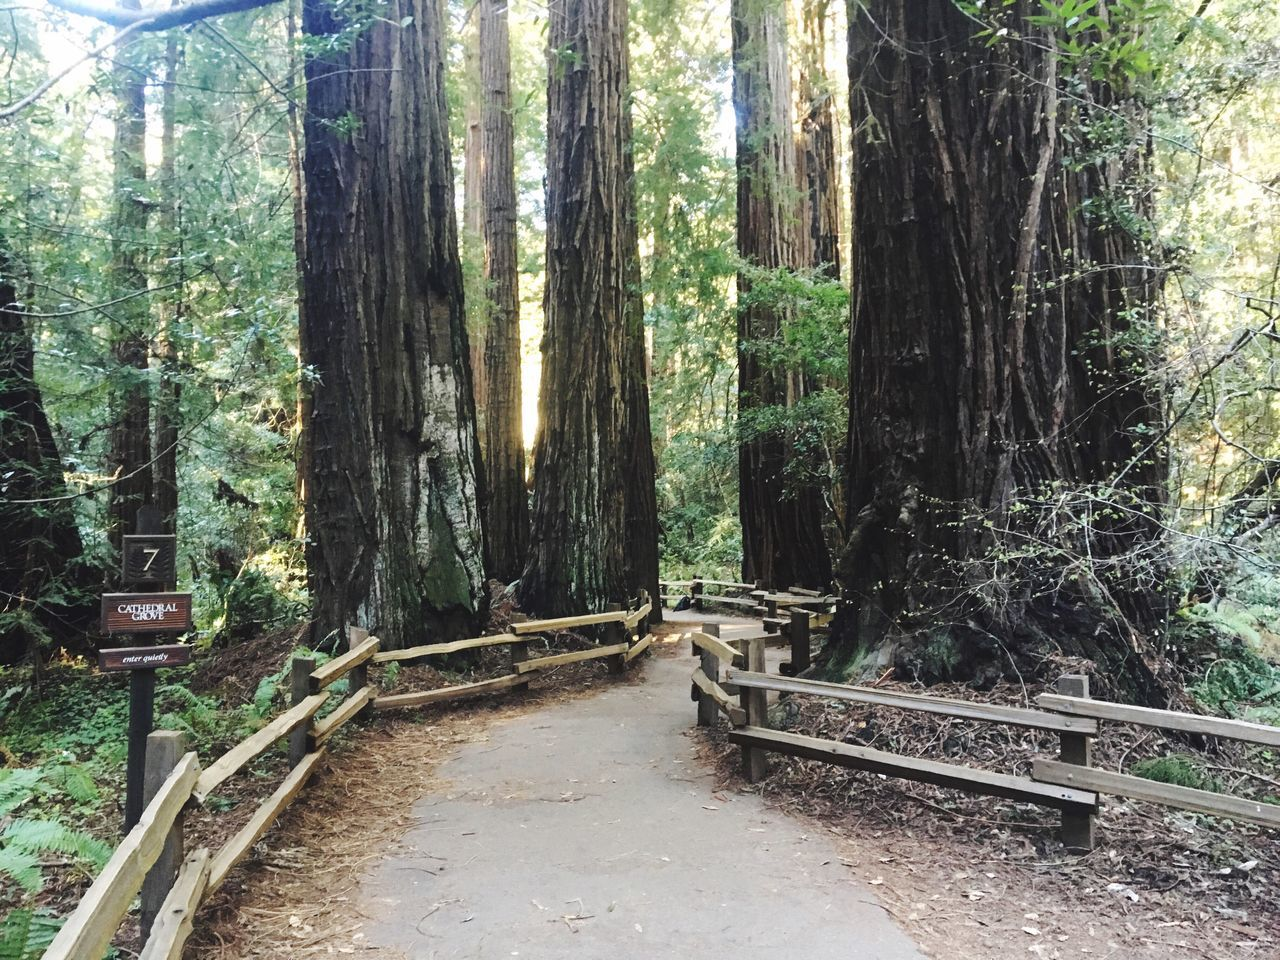 IPhoneography IPhone Photography Iphonephotography Tree Forest Nature Tree Trunk WoodLand Growth Tranquil Scene Tranquility No People Day Beauty In Nature Scenics Outdoors Woods Bamboo Grove Muir Woods